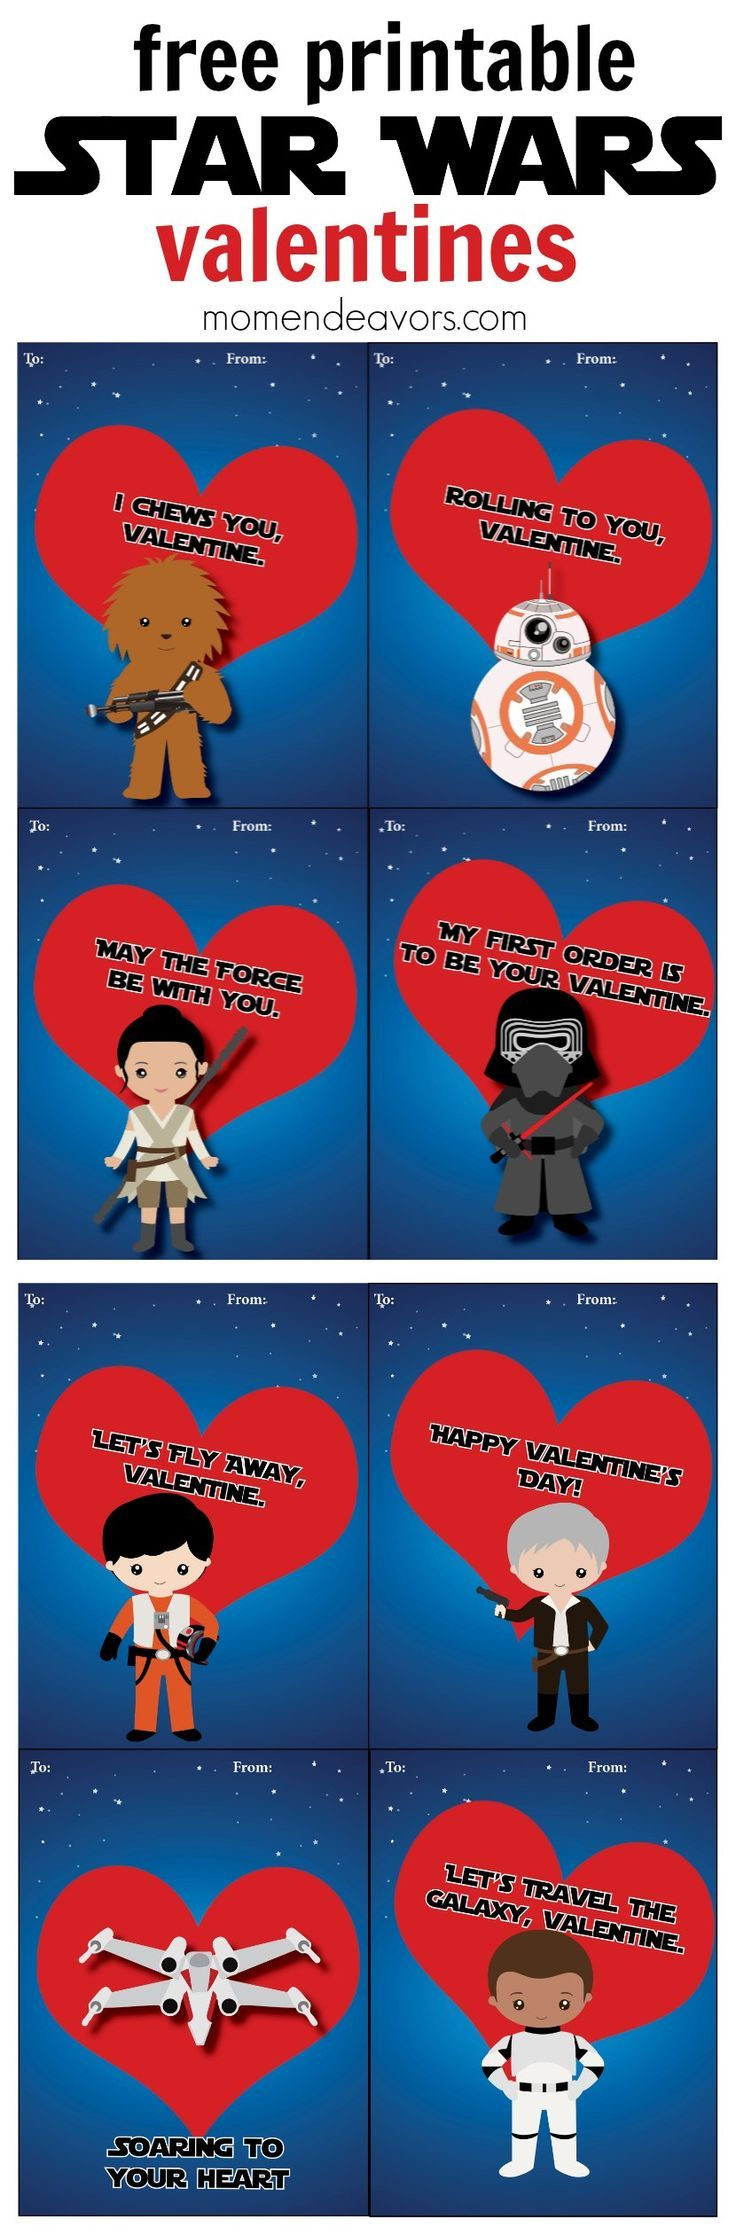 Star Wars Printable Valentines - These Force Awakens valentine cards are sure to be a bit this Valentine's Day!